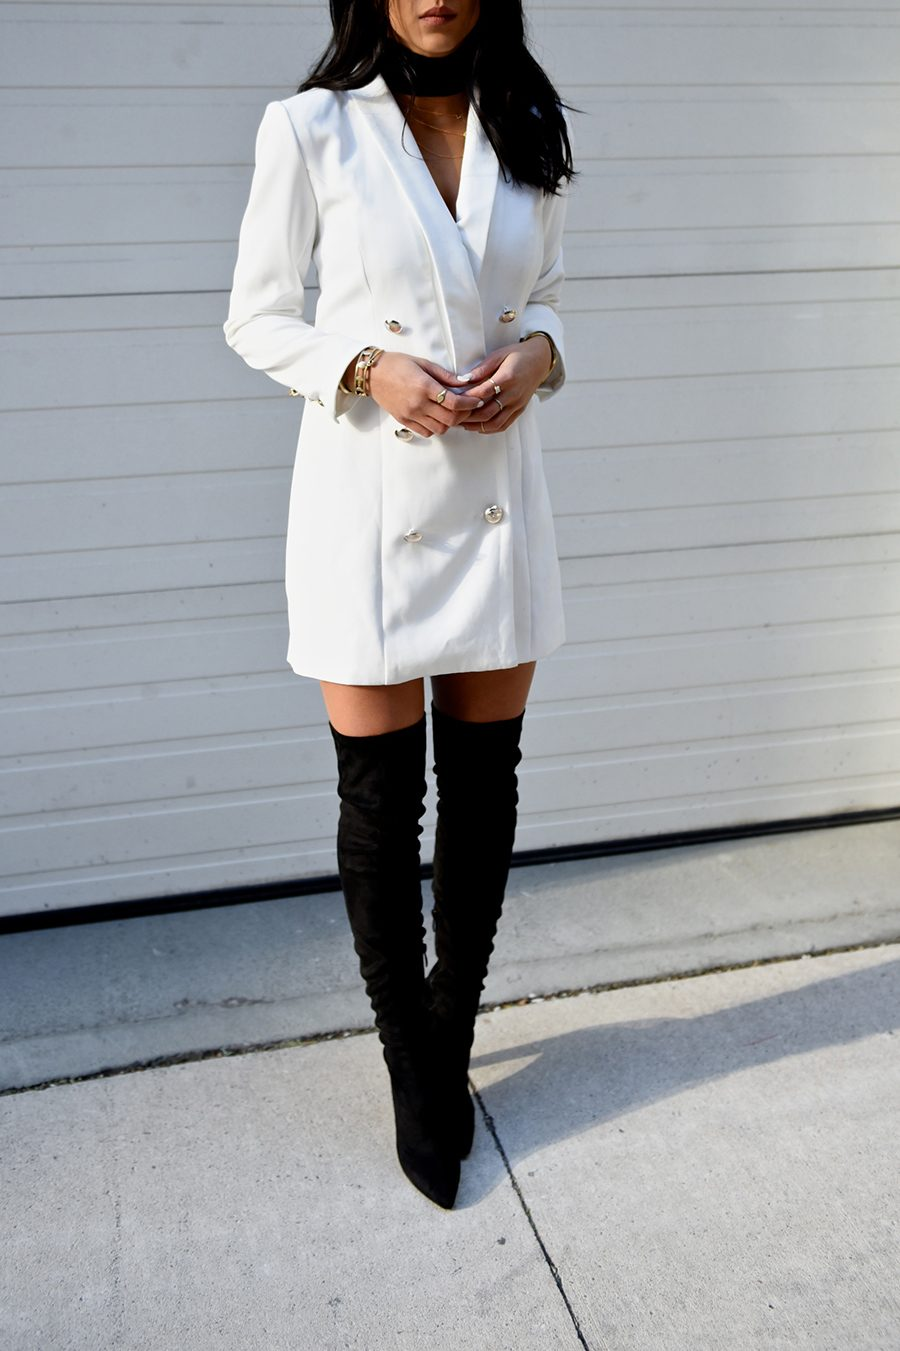 party dress and boots